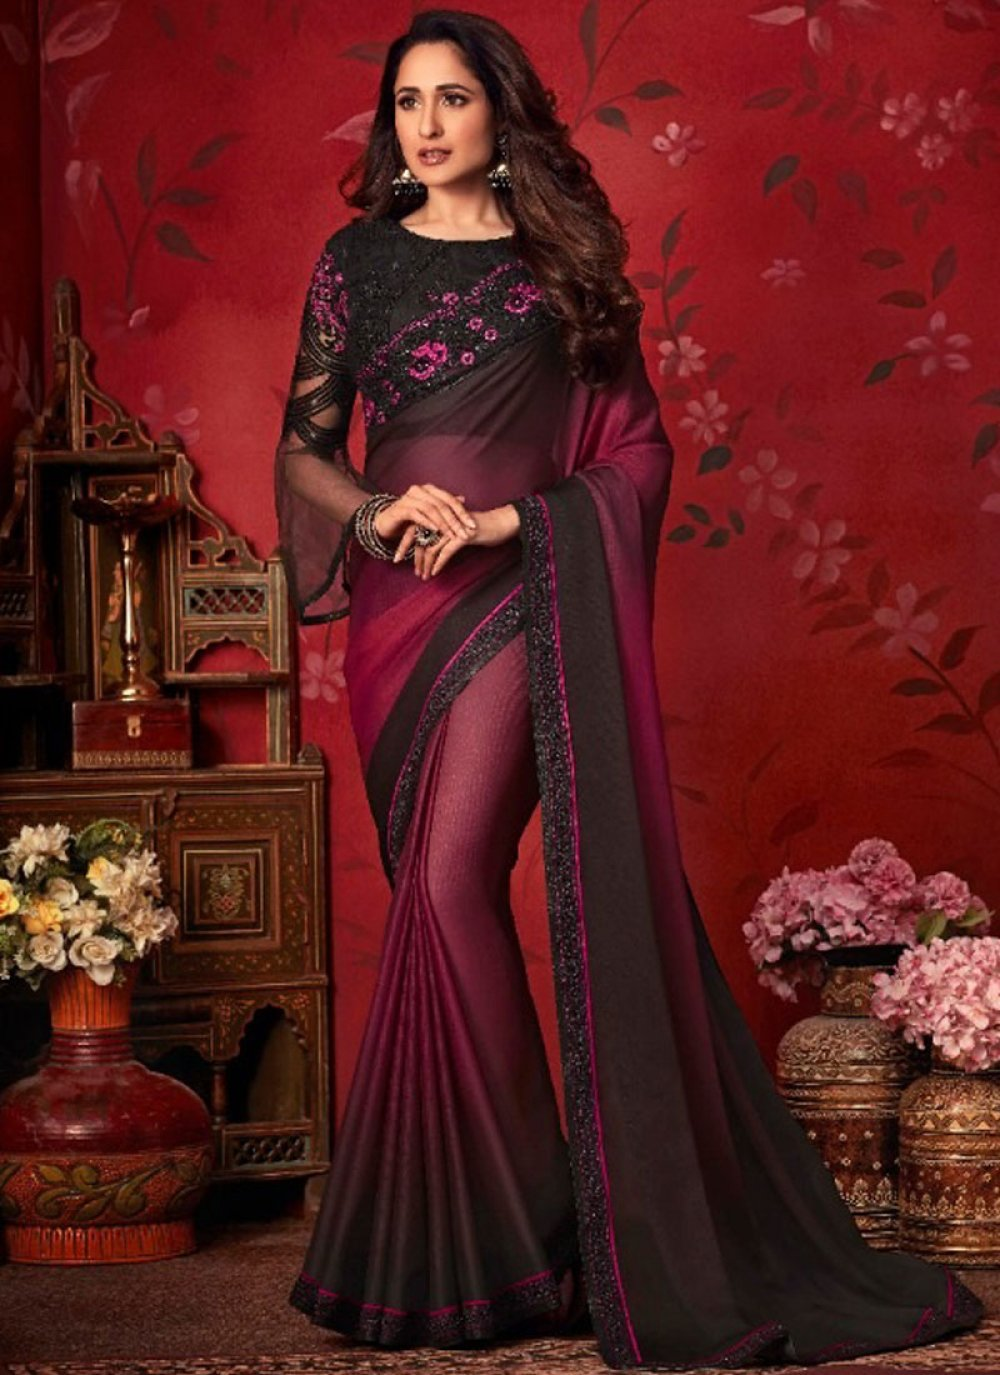 Black and Maroon Digital Print Faux Chiffon Trendy Saree